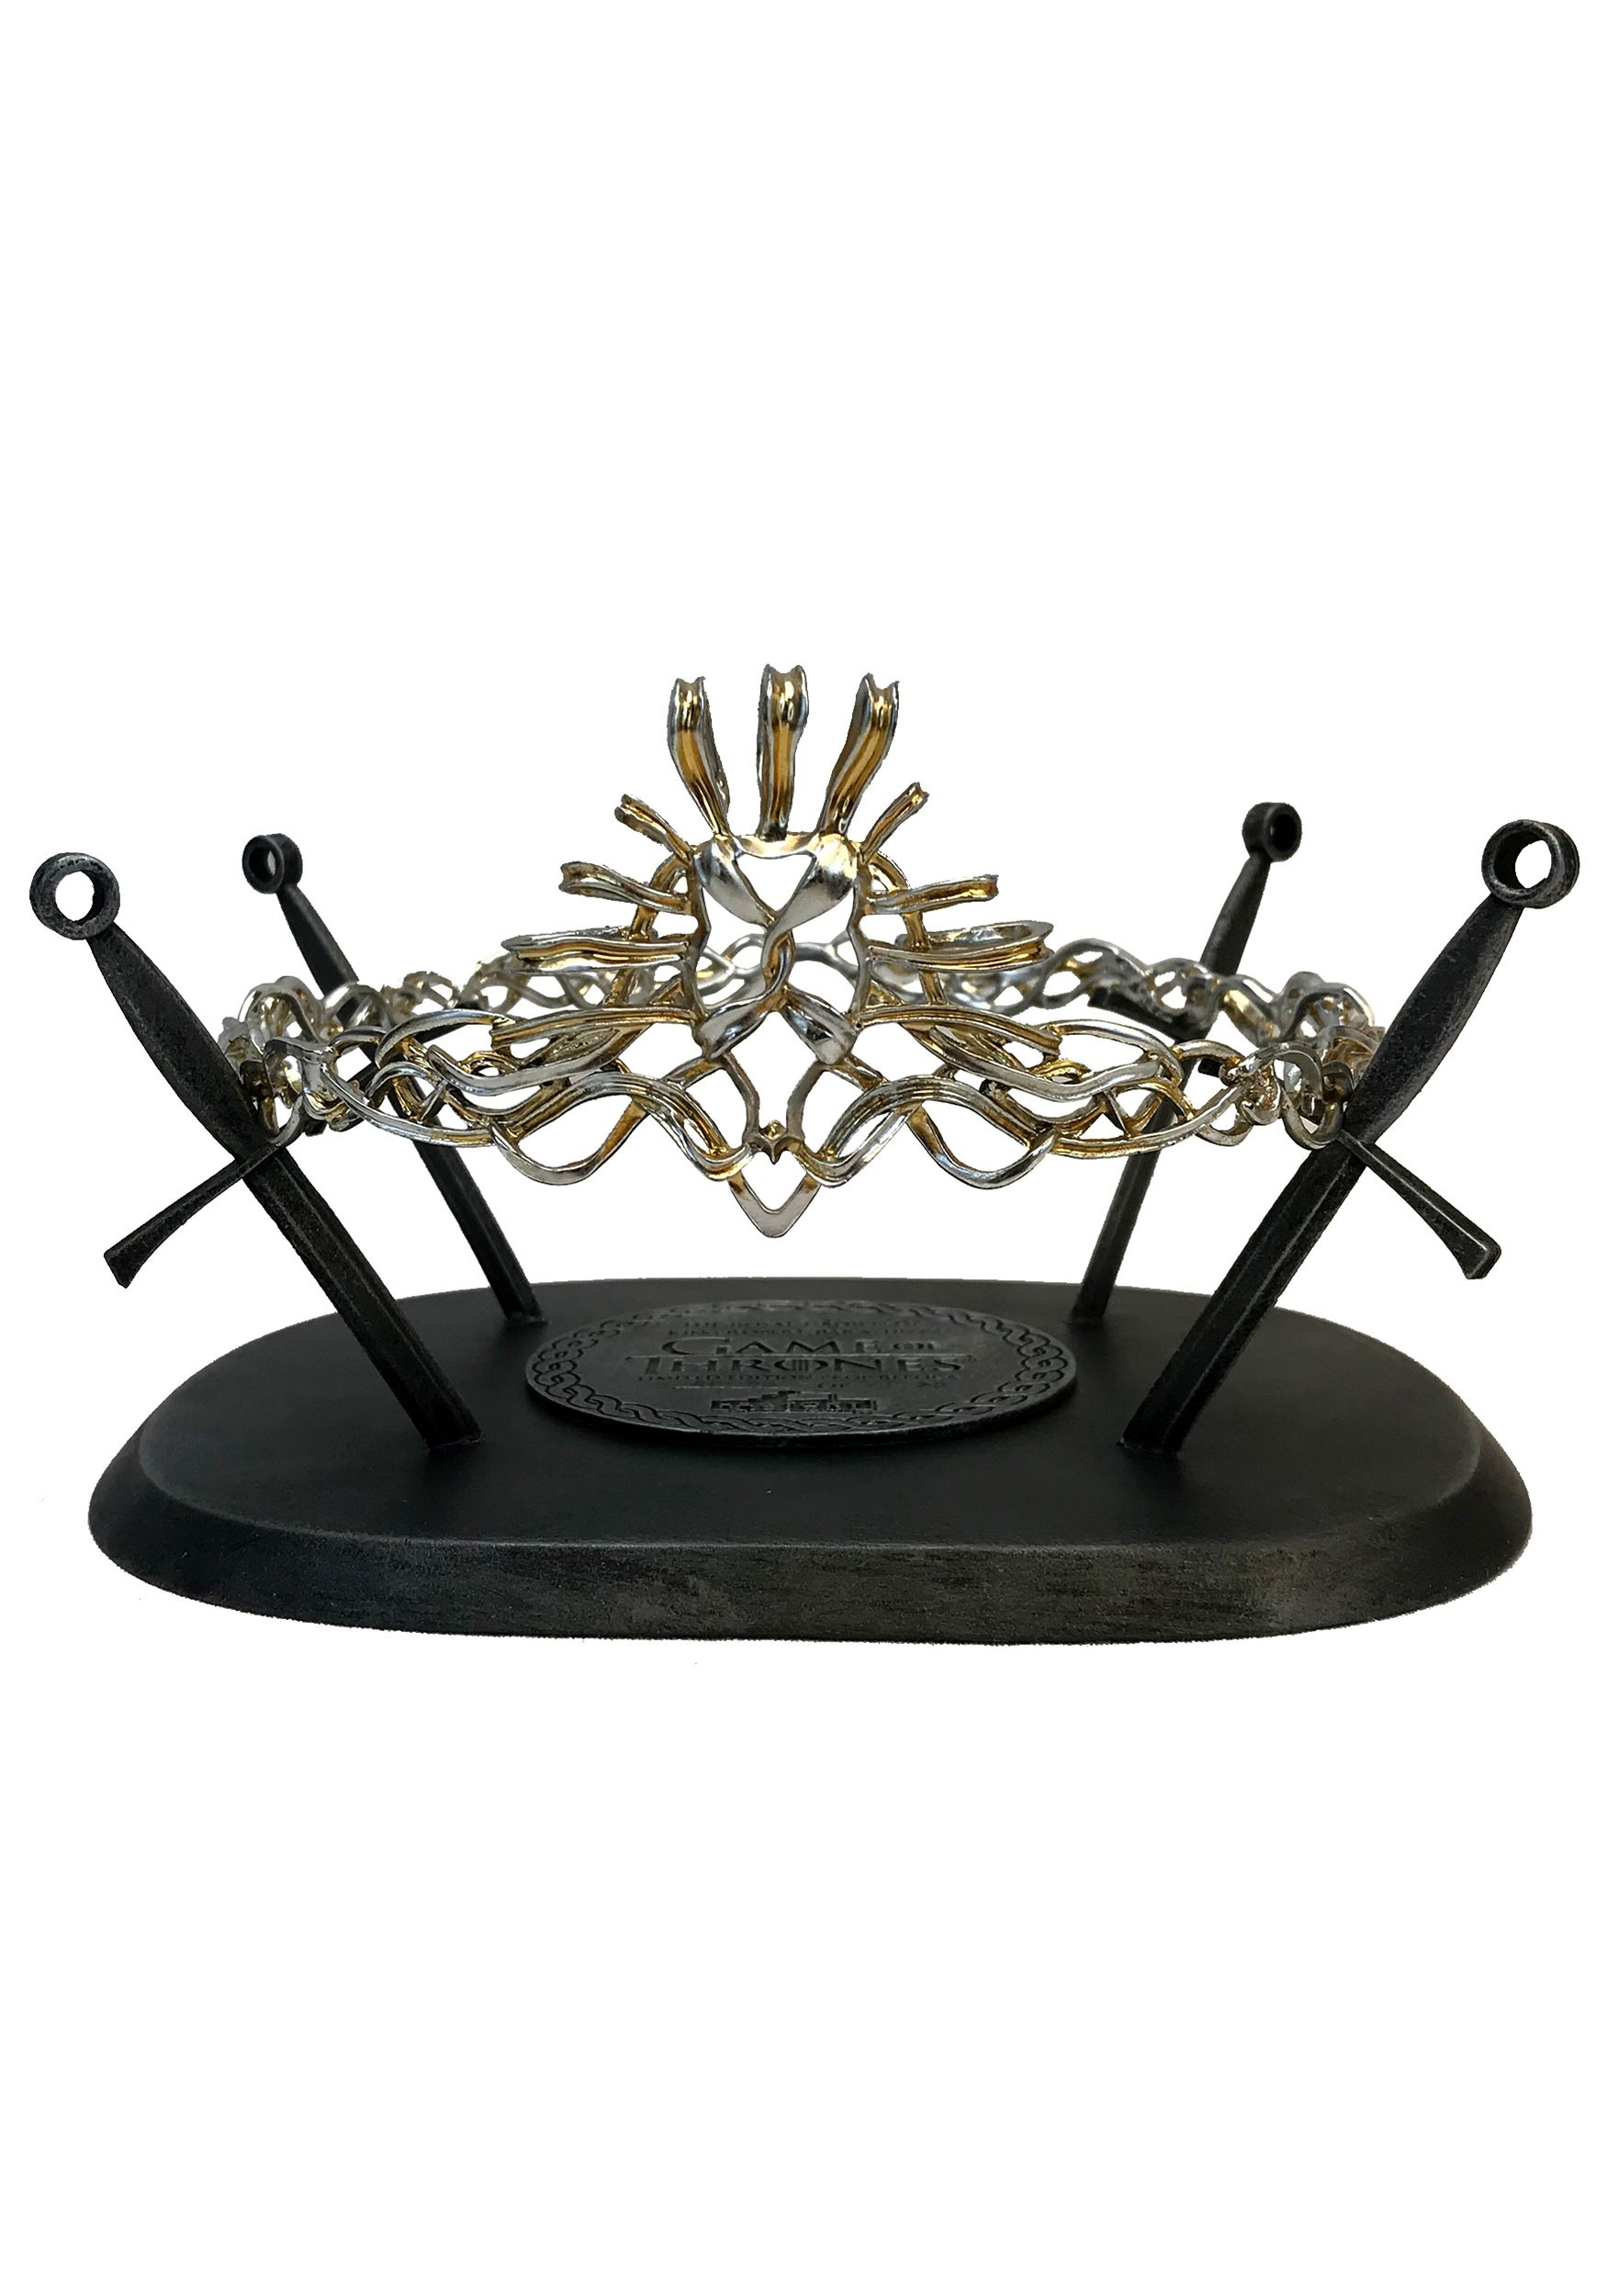 Game Of Thrones Limited Edition Queen Cersei Crown Replica